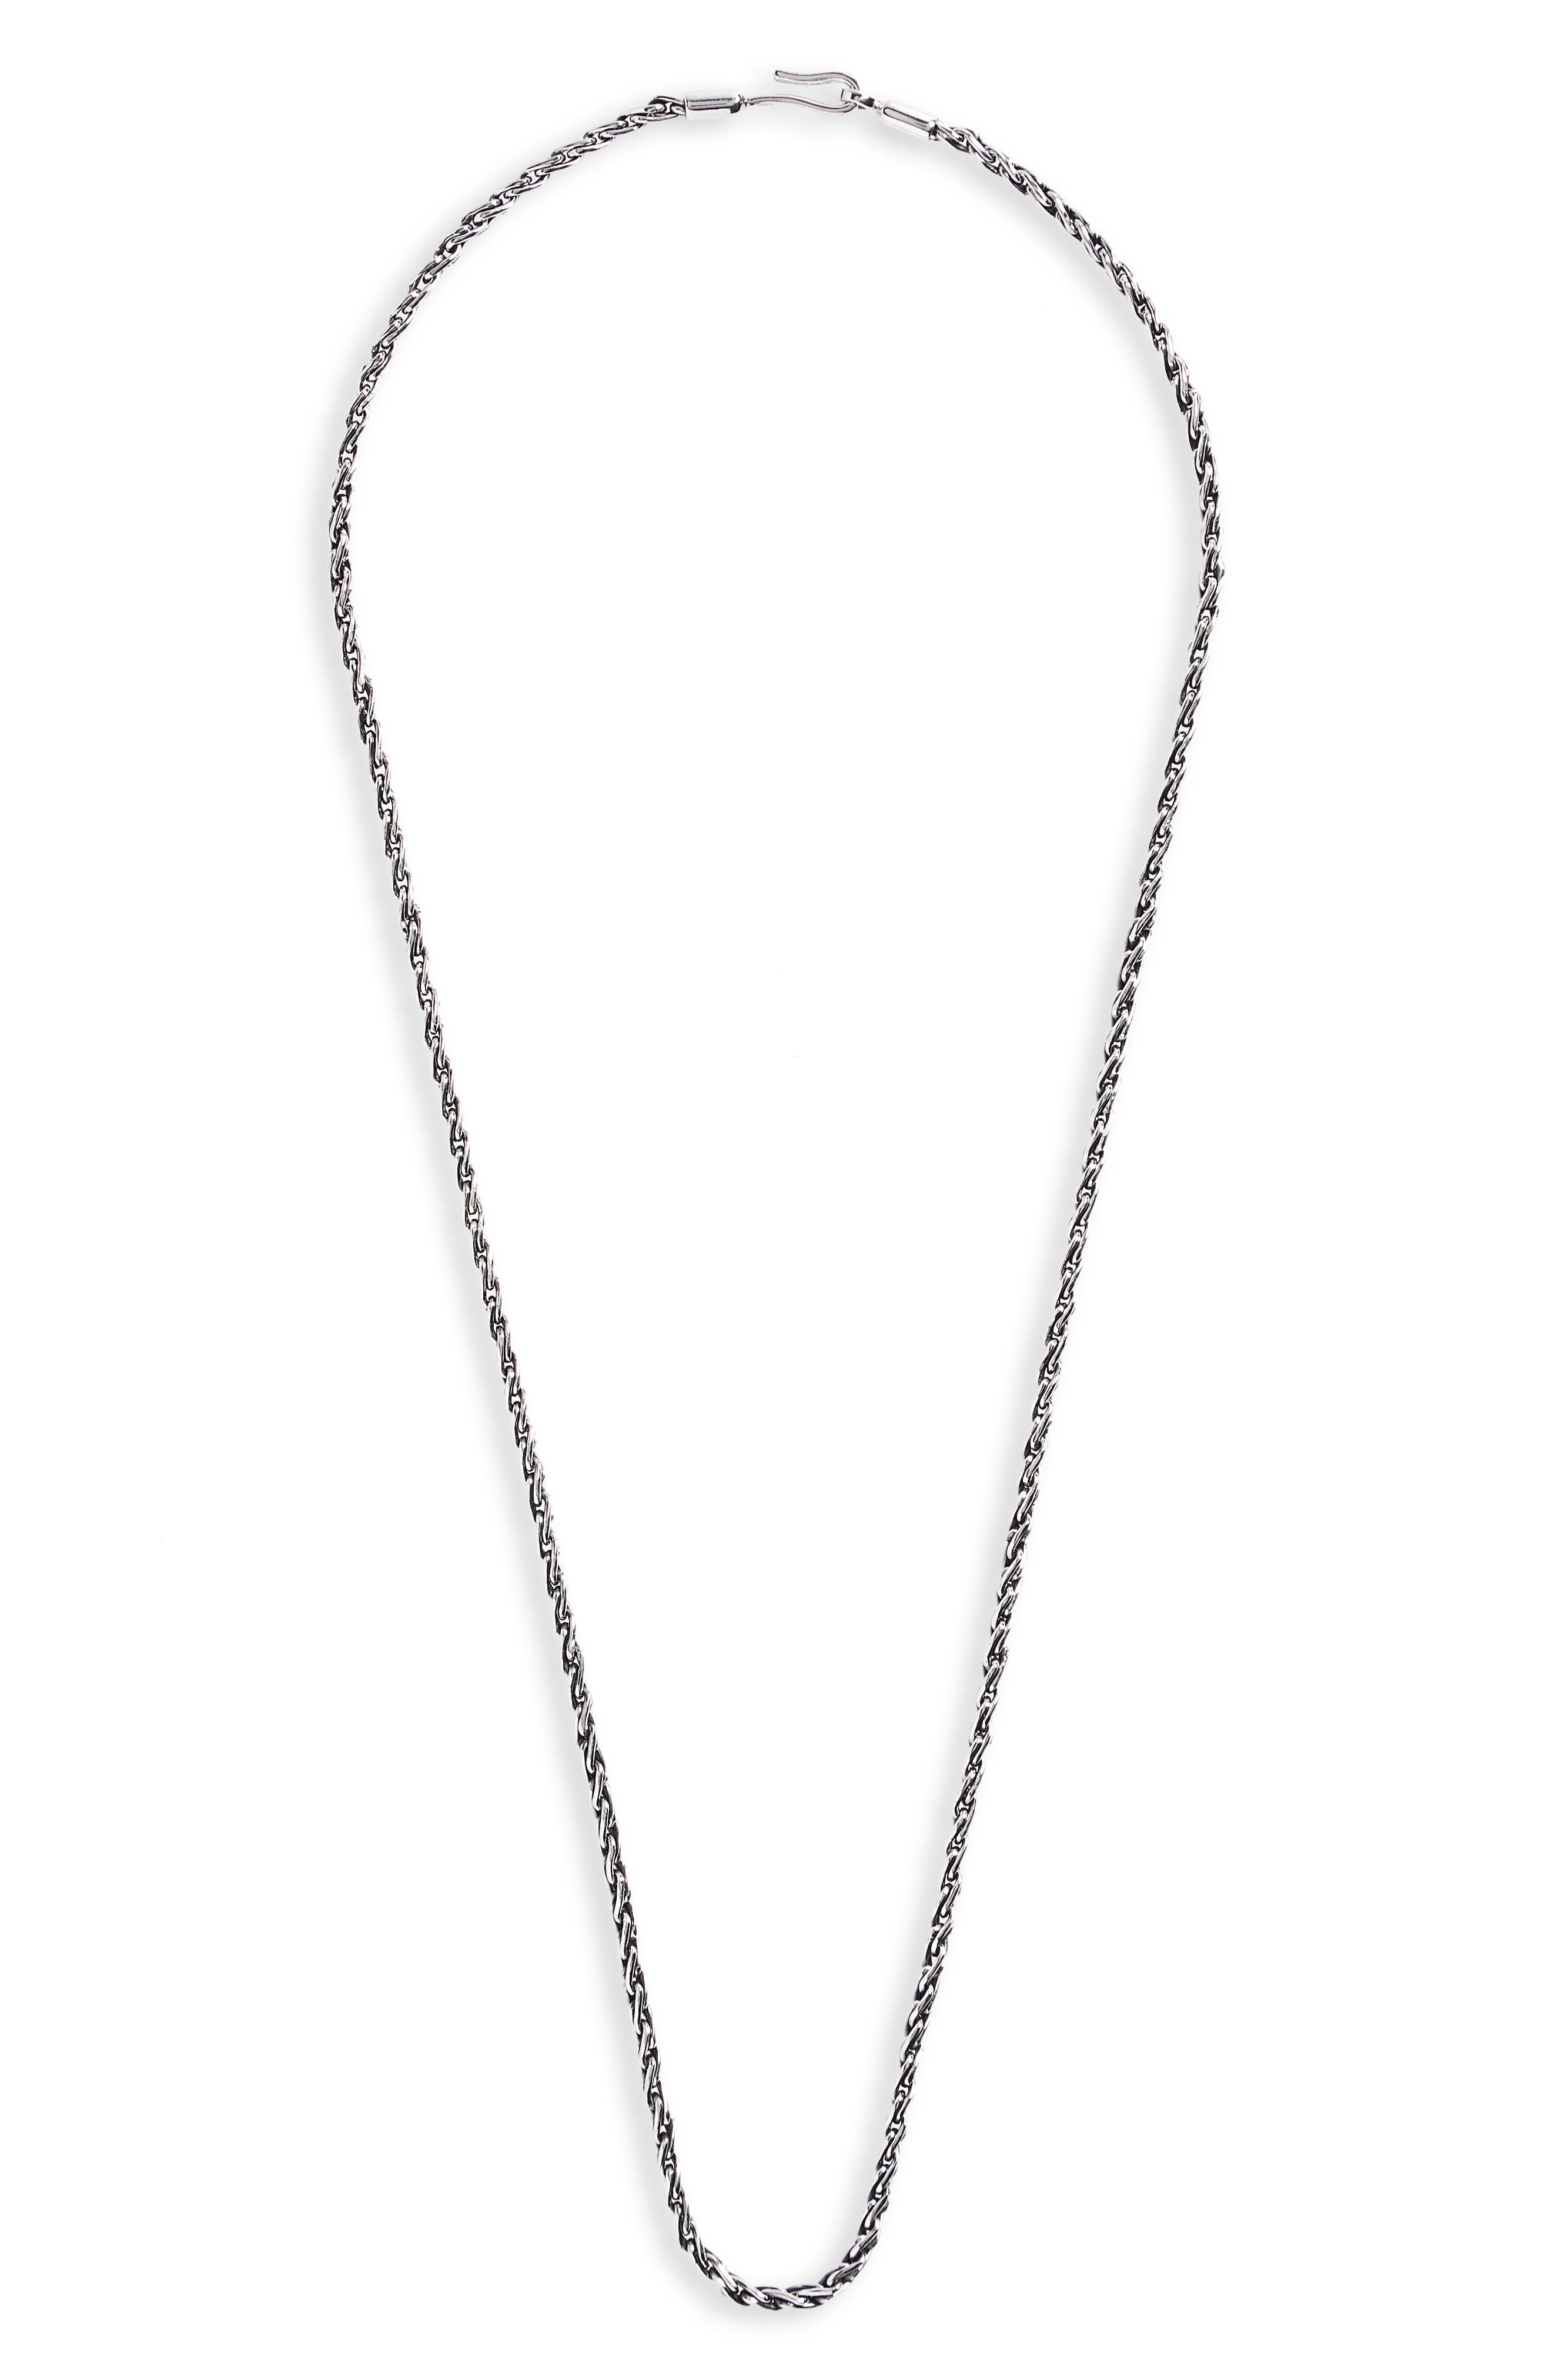 Caputo & Co. Sterling Silver Chain Necklace